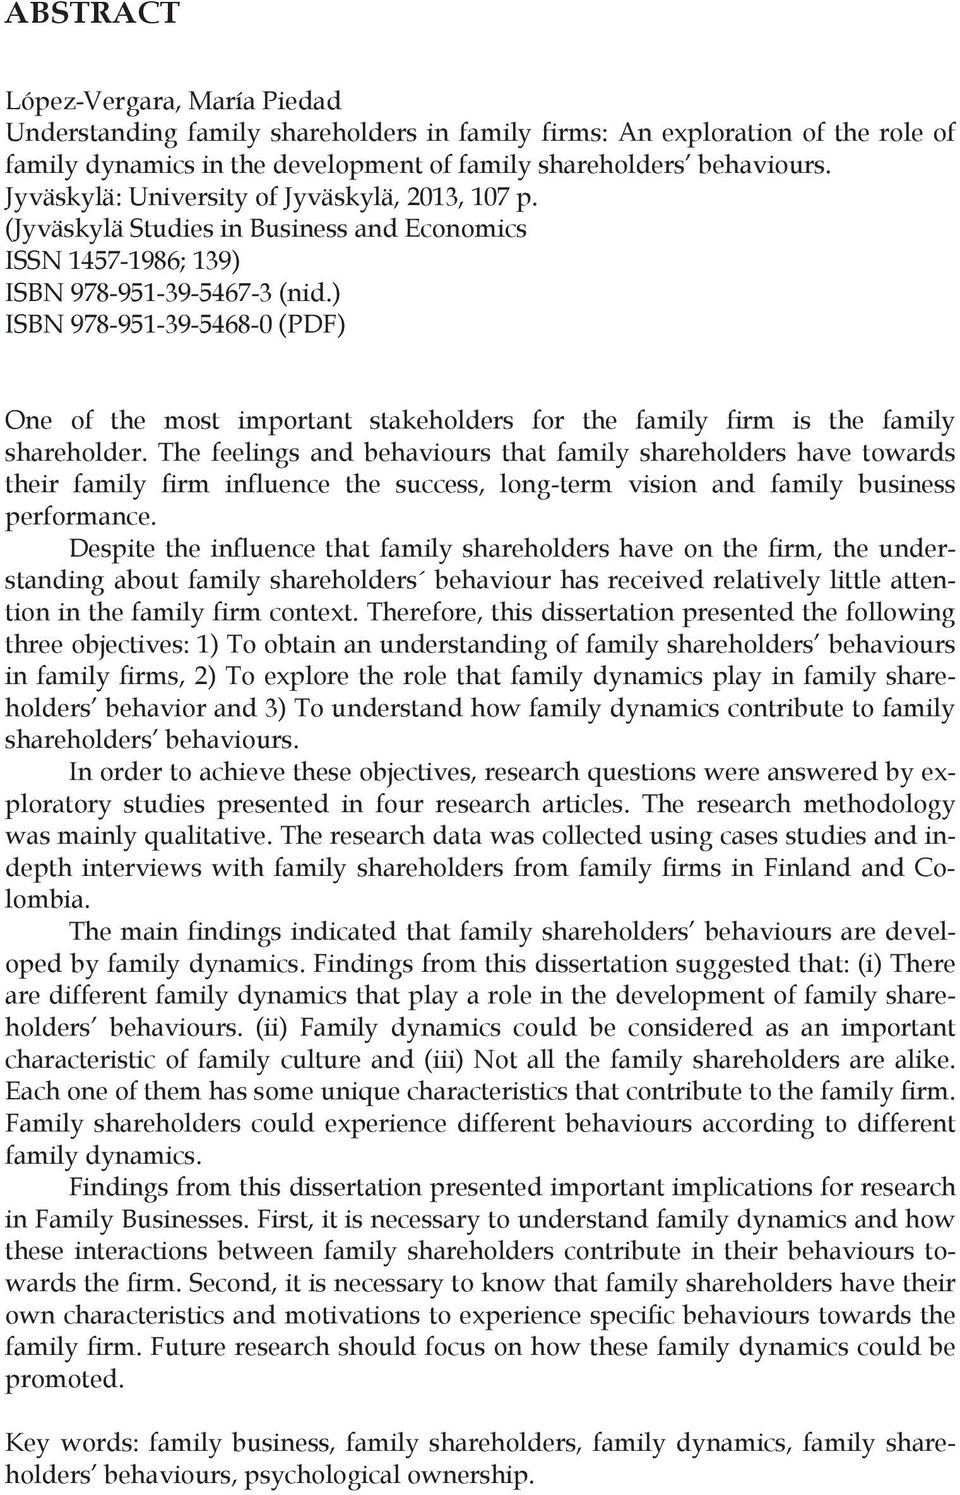 ) ISBN 978-951-39-5468-0 (PDF) One of the most important stakeholders for the family firm is the family shareholder.